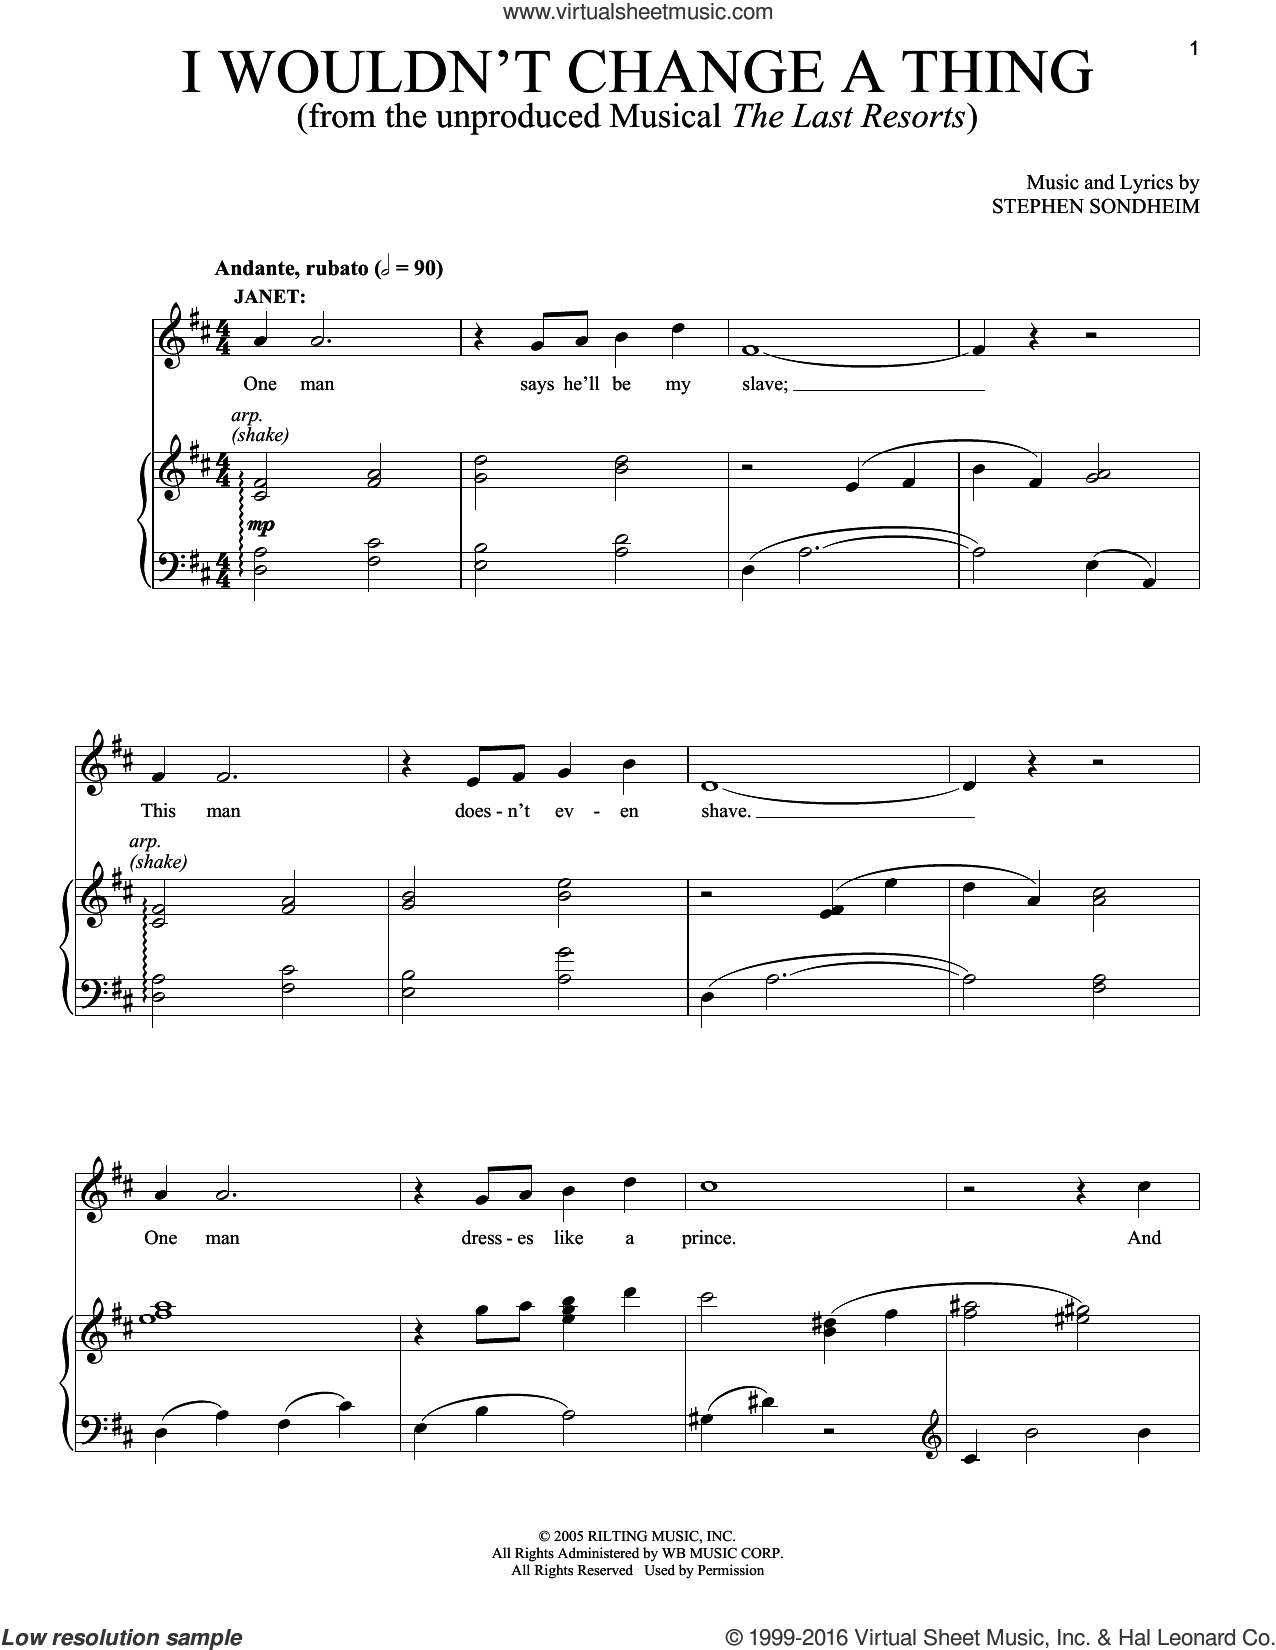 I Wouldn't Change A Thing sheet music for voice and piano by Stephen Sondheim, intermediate skill level